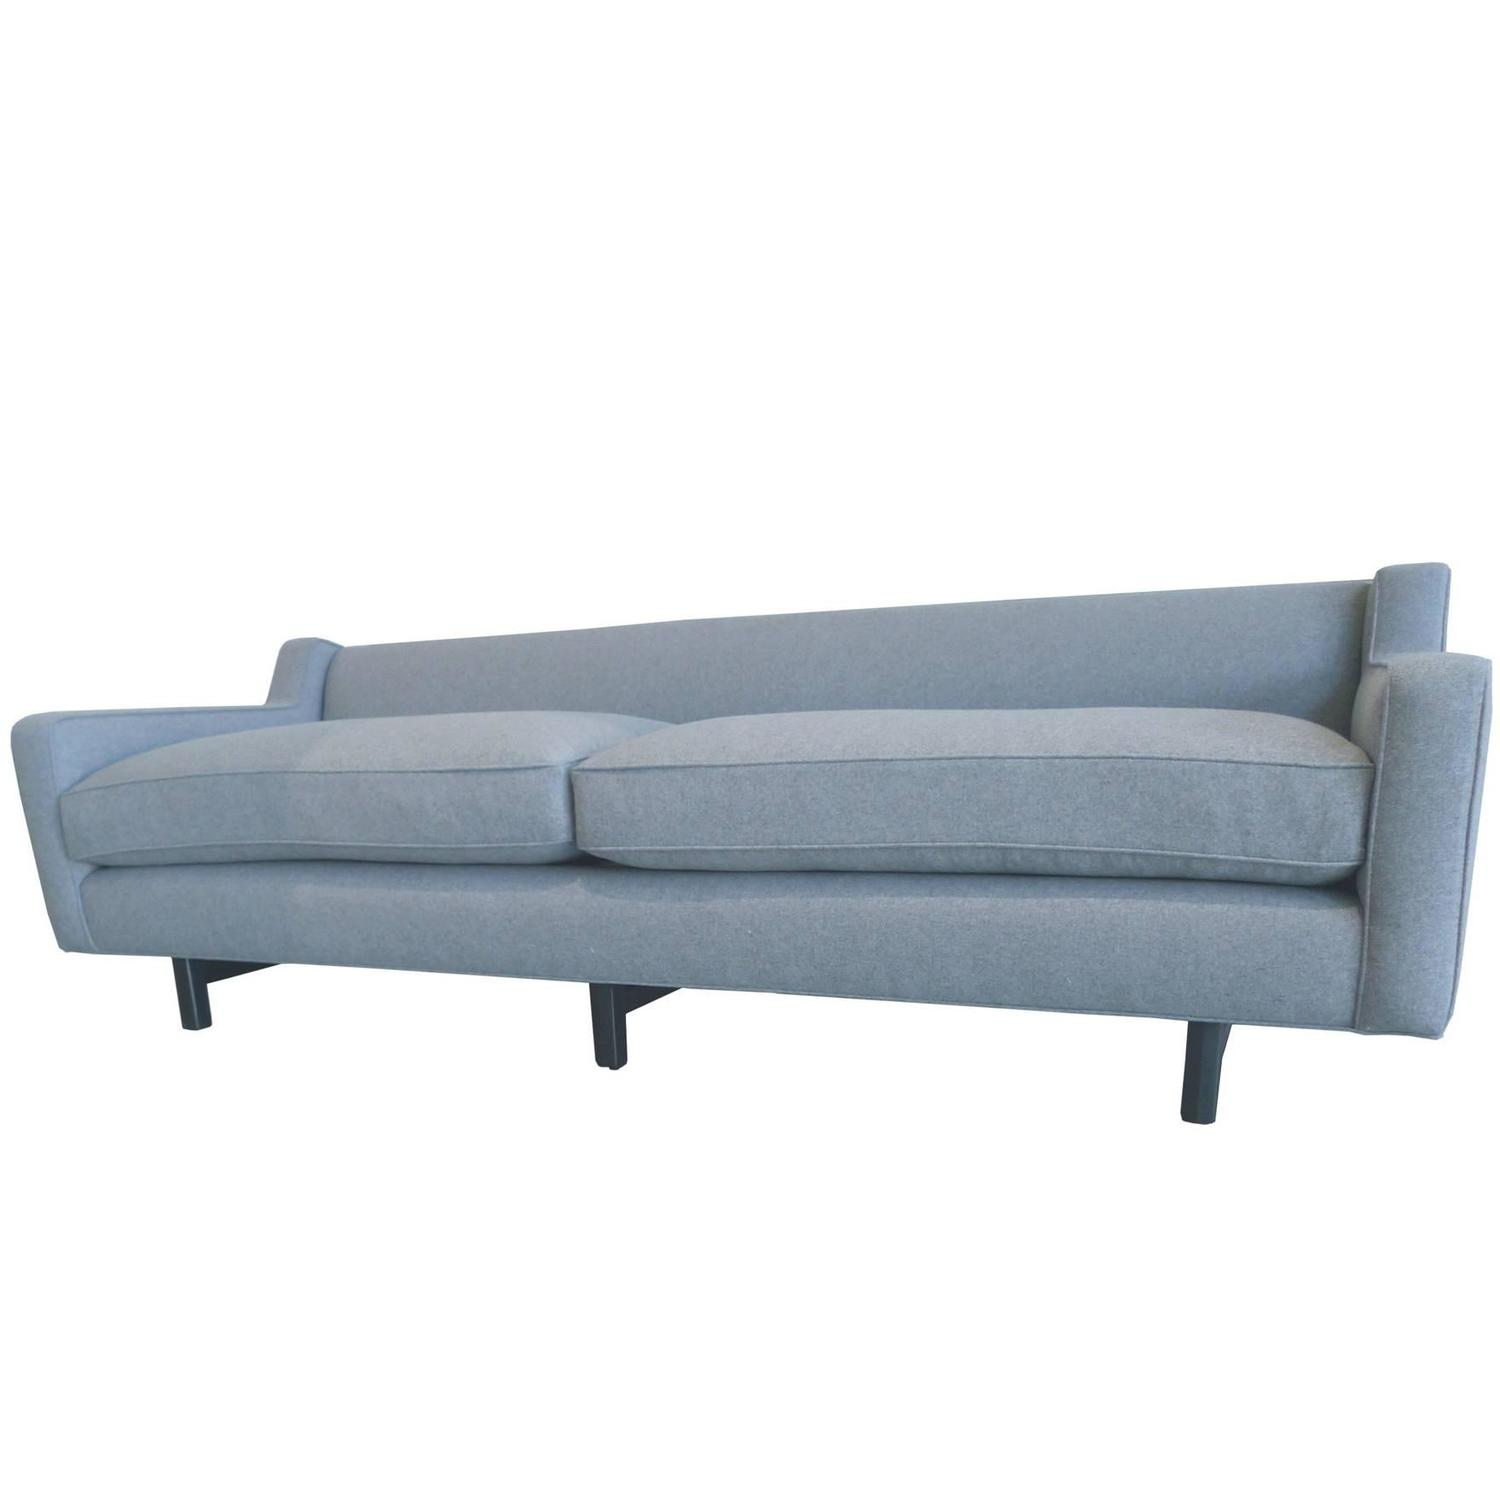 Superieur 1960s Edward Wormley Sofa For Dunbar At 1stdibs